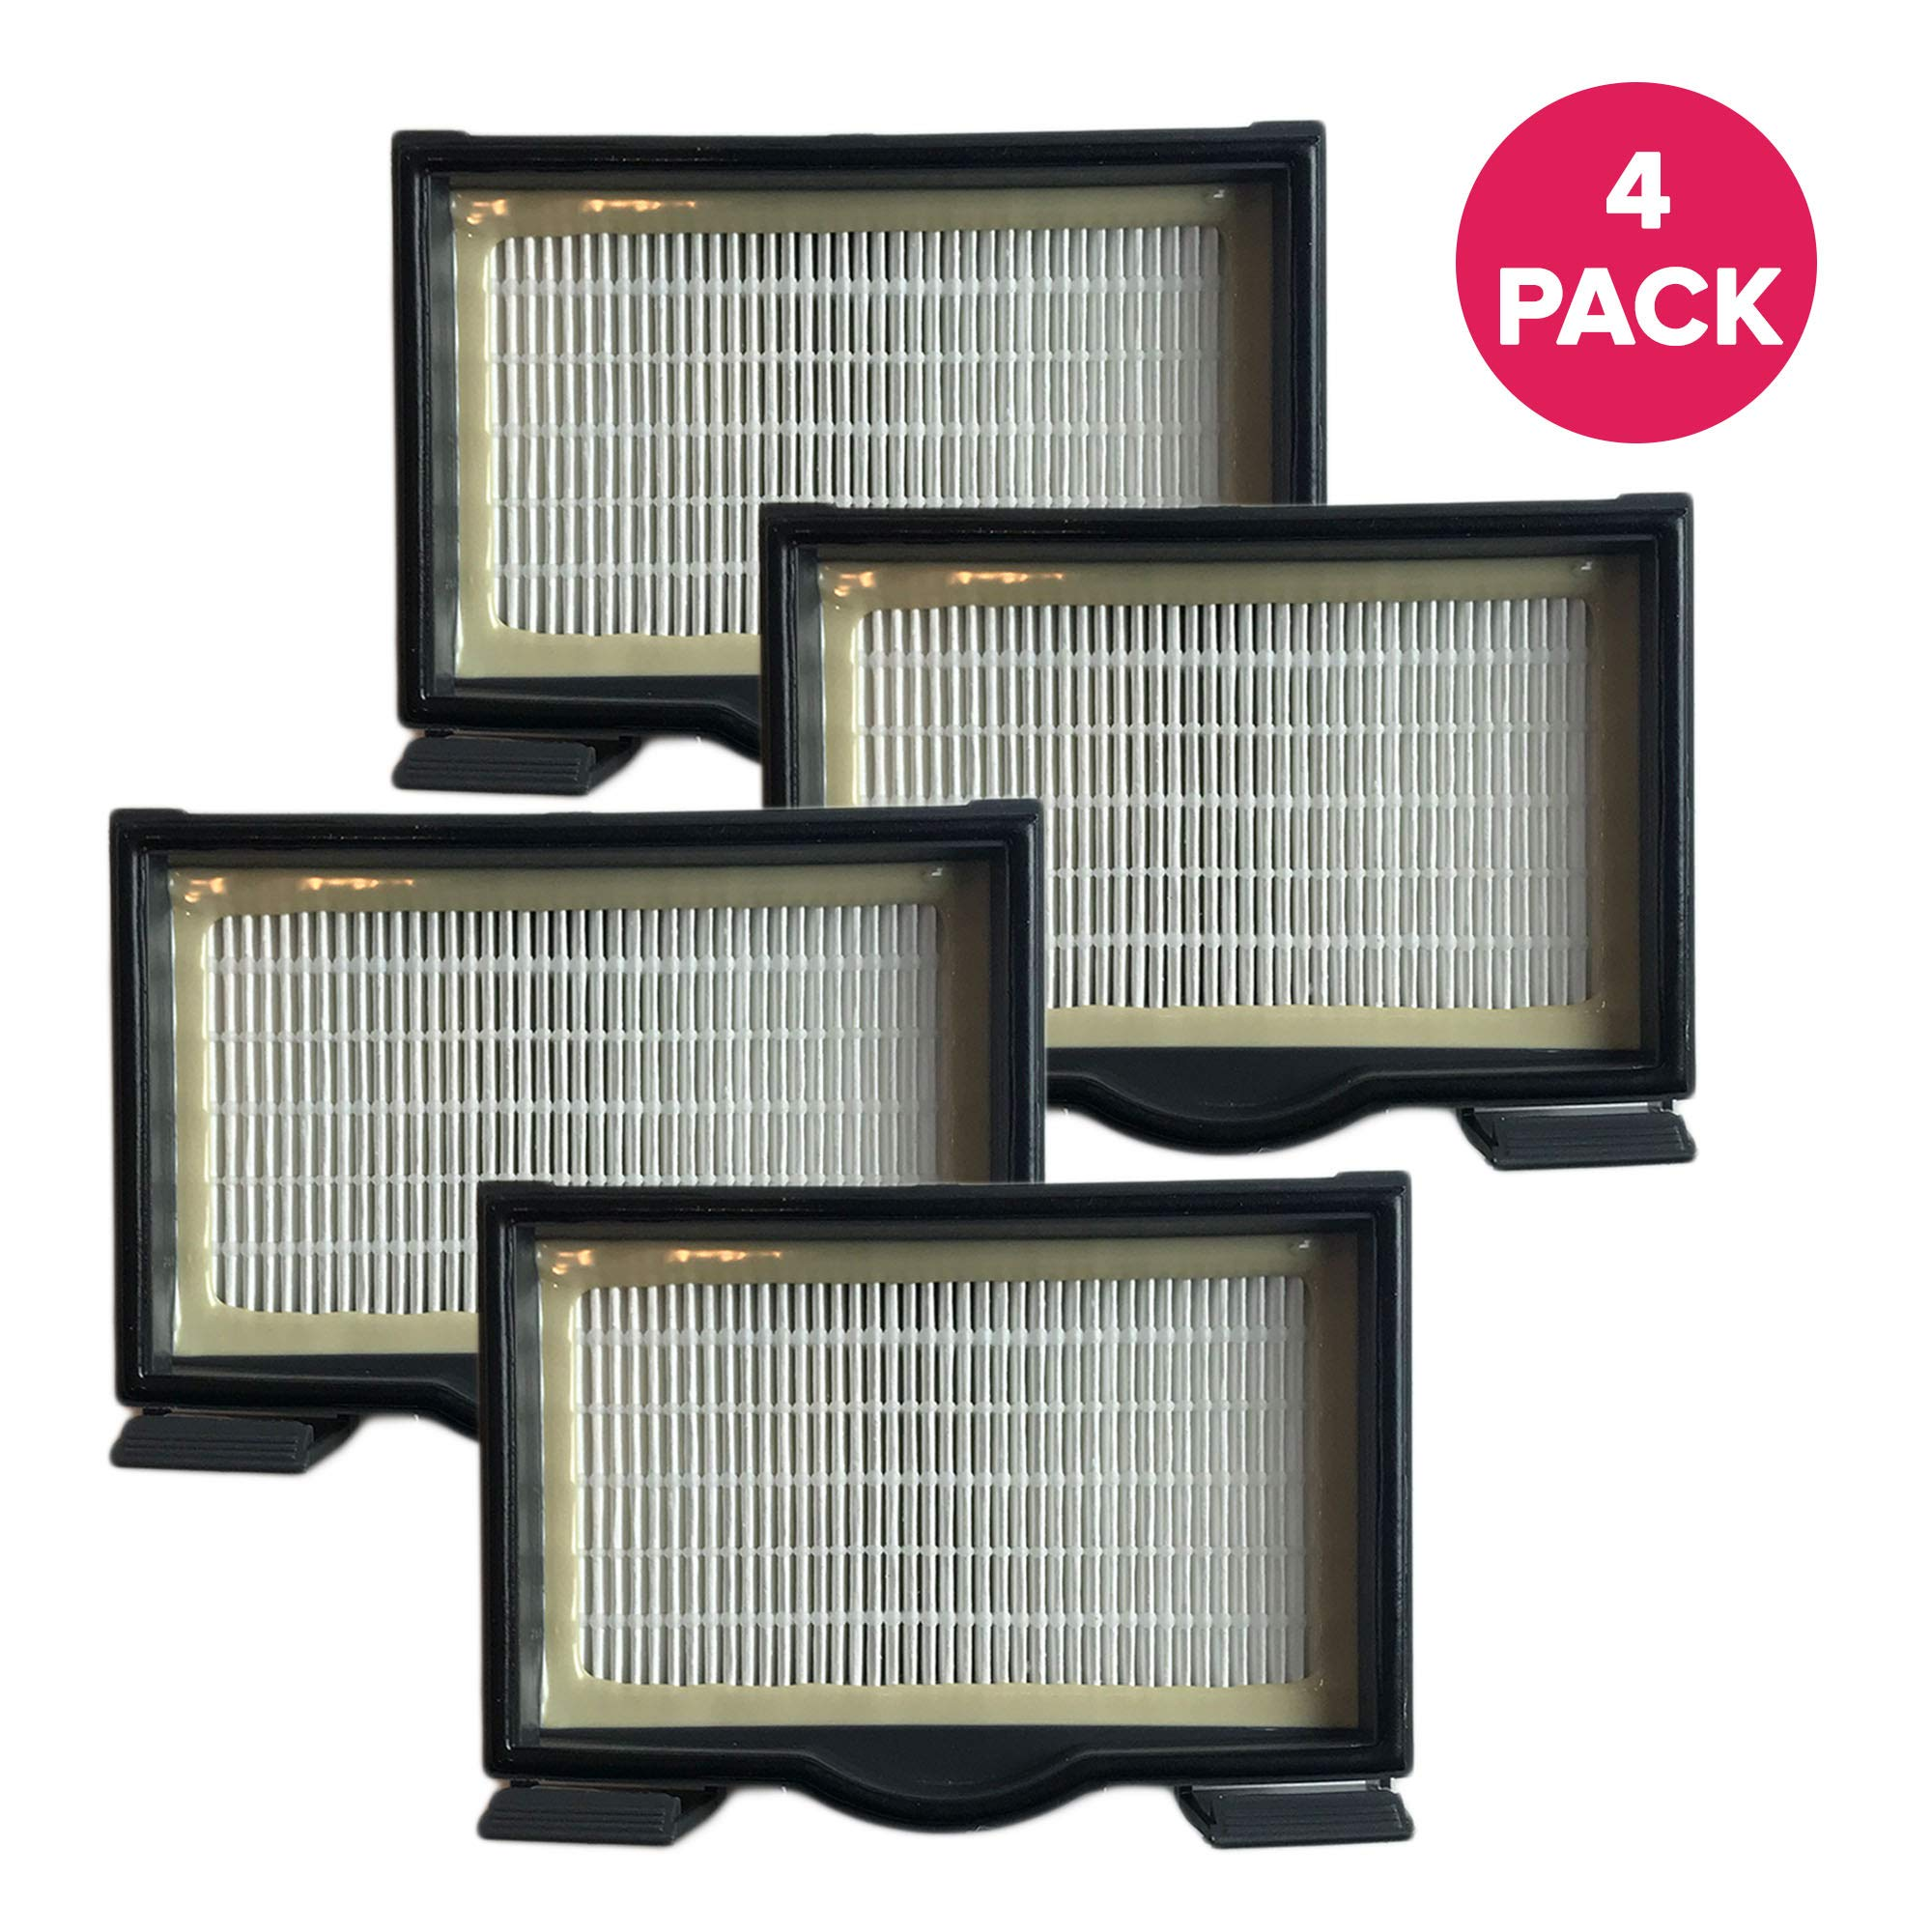 Crucial Vacuum Filter Replacement Parts Compatible with Eureka HF8 / HF-8 Part # 60666, 60666A, 60666B, Fits Sanitaire 3600 Series & Mighty Mite Series 3685, 3695 C - HEPA Style Filters (4 Pack) by Crucial Vacuum